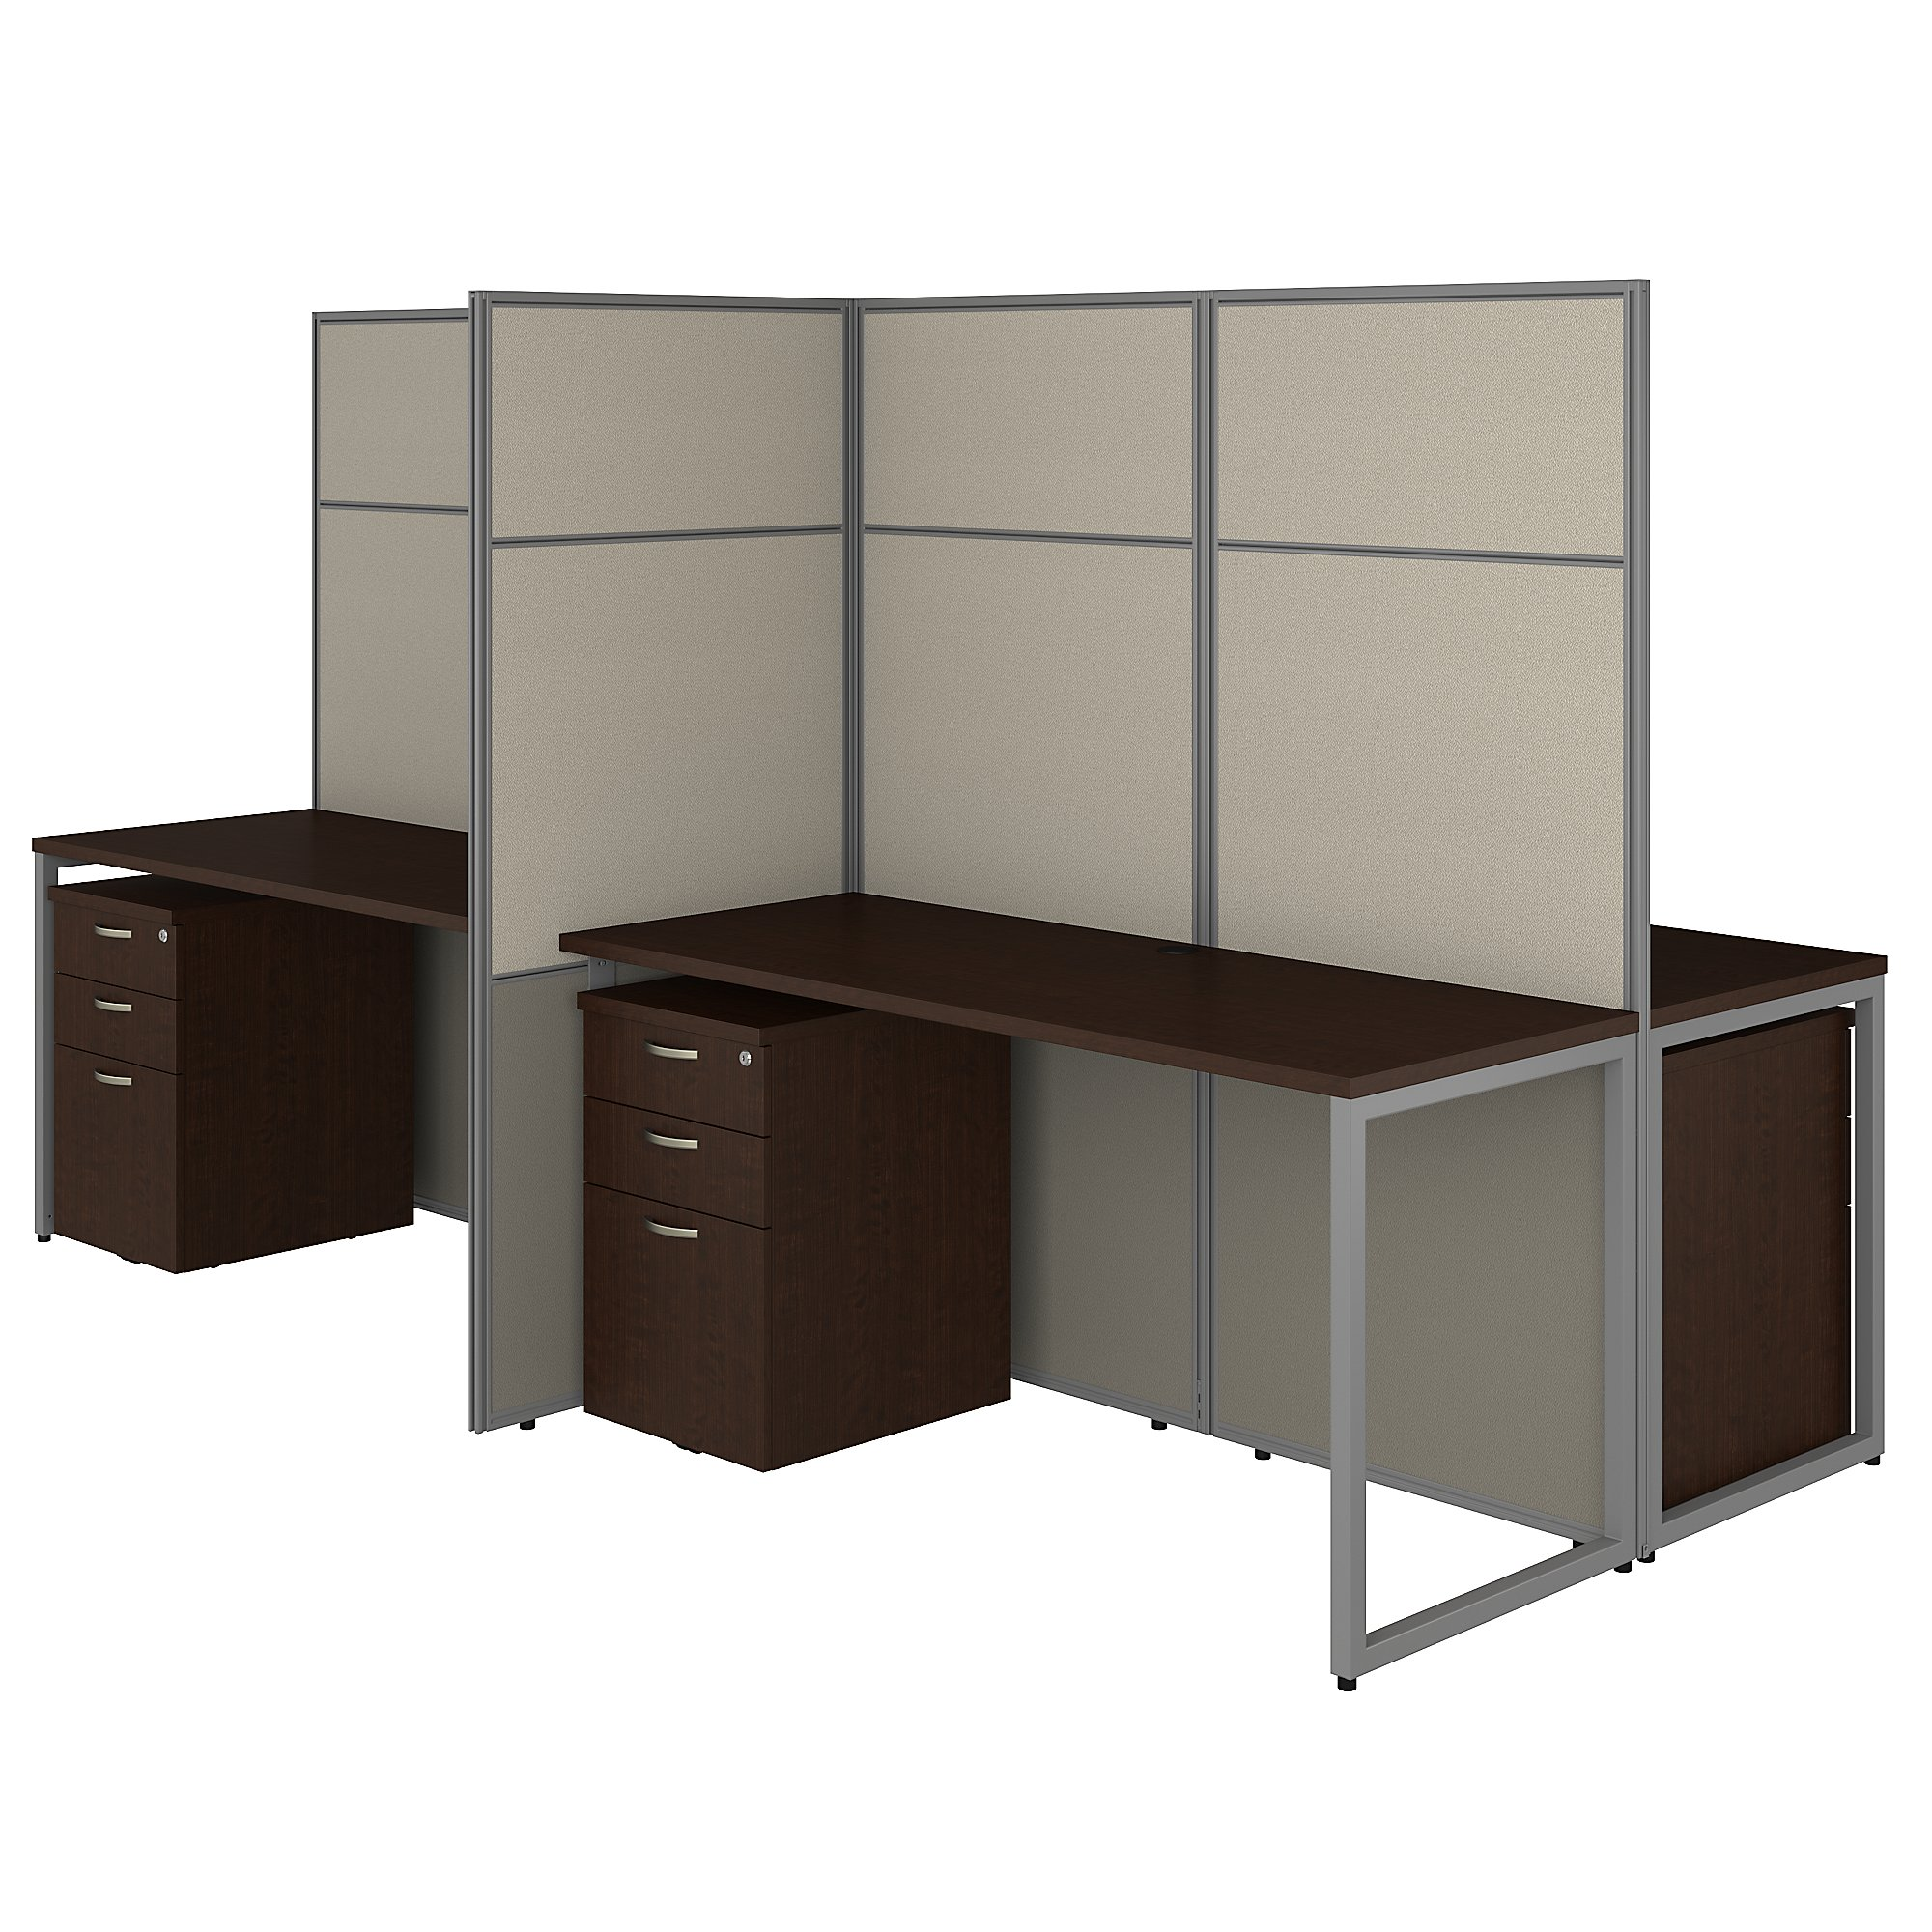 mocha cherry easy office 4 person cubicle with storage